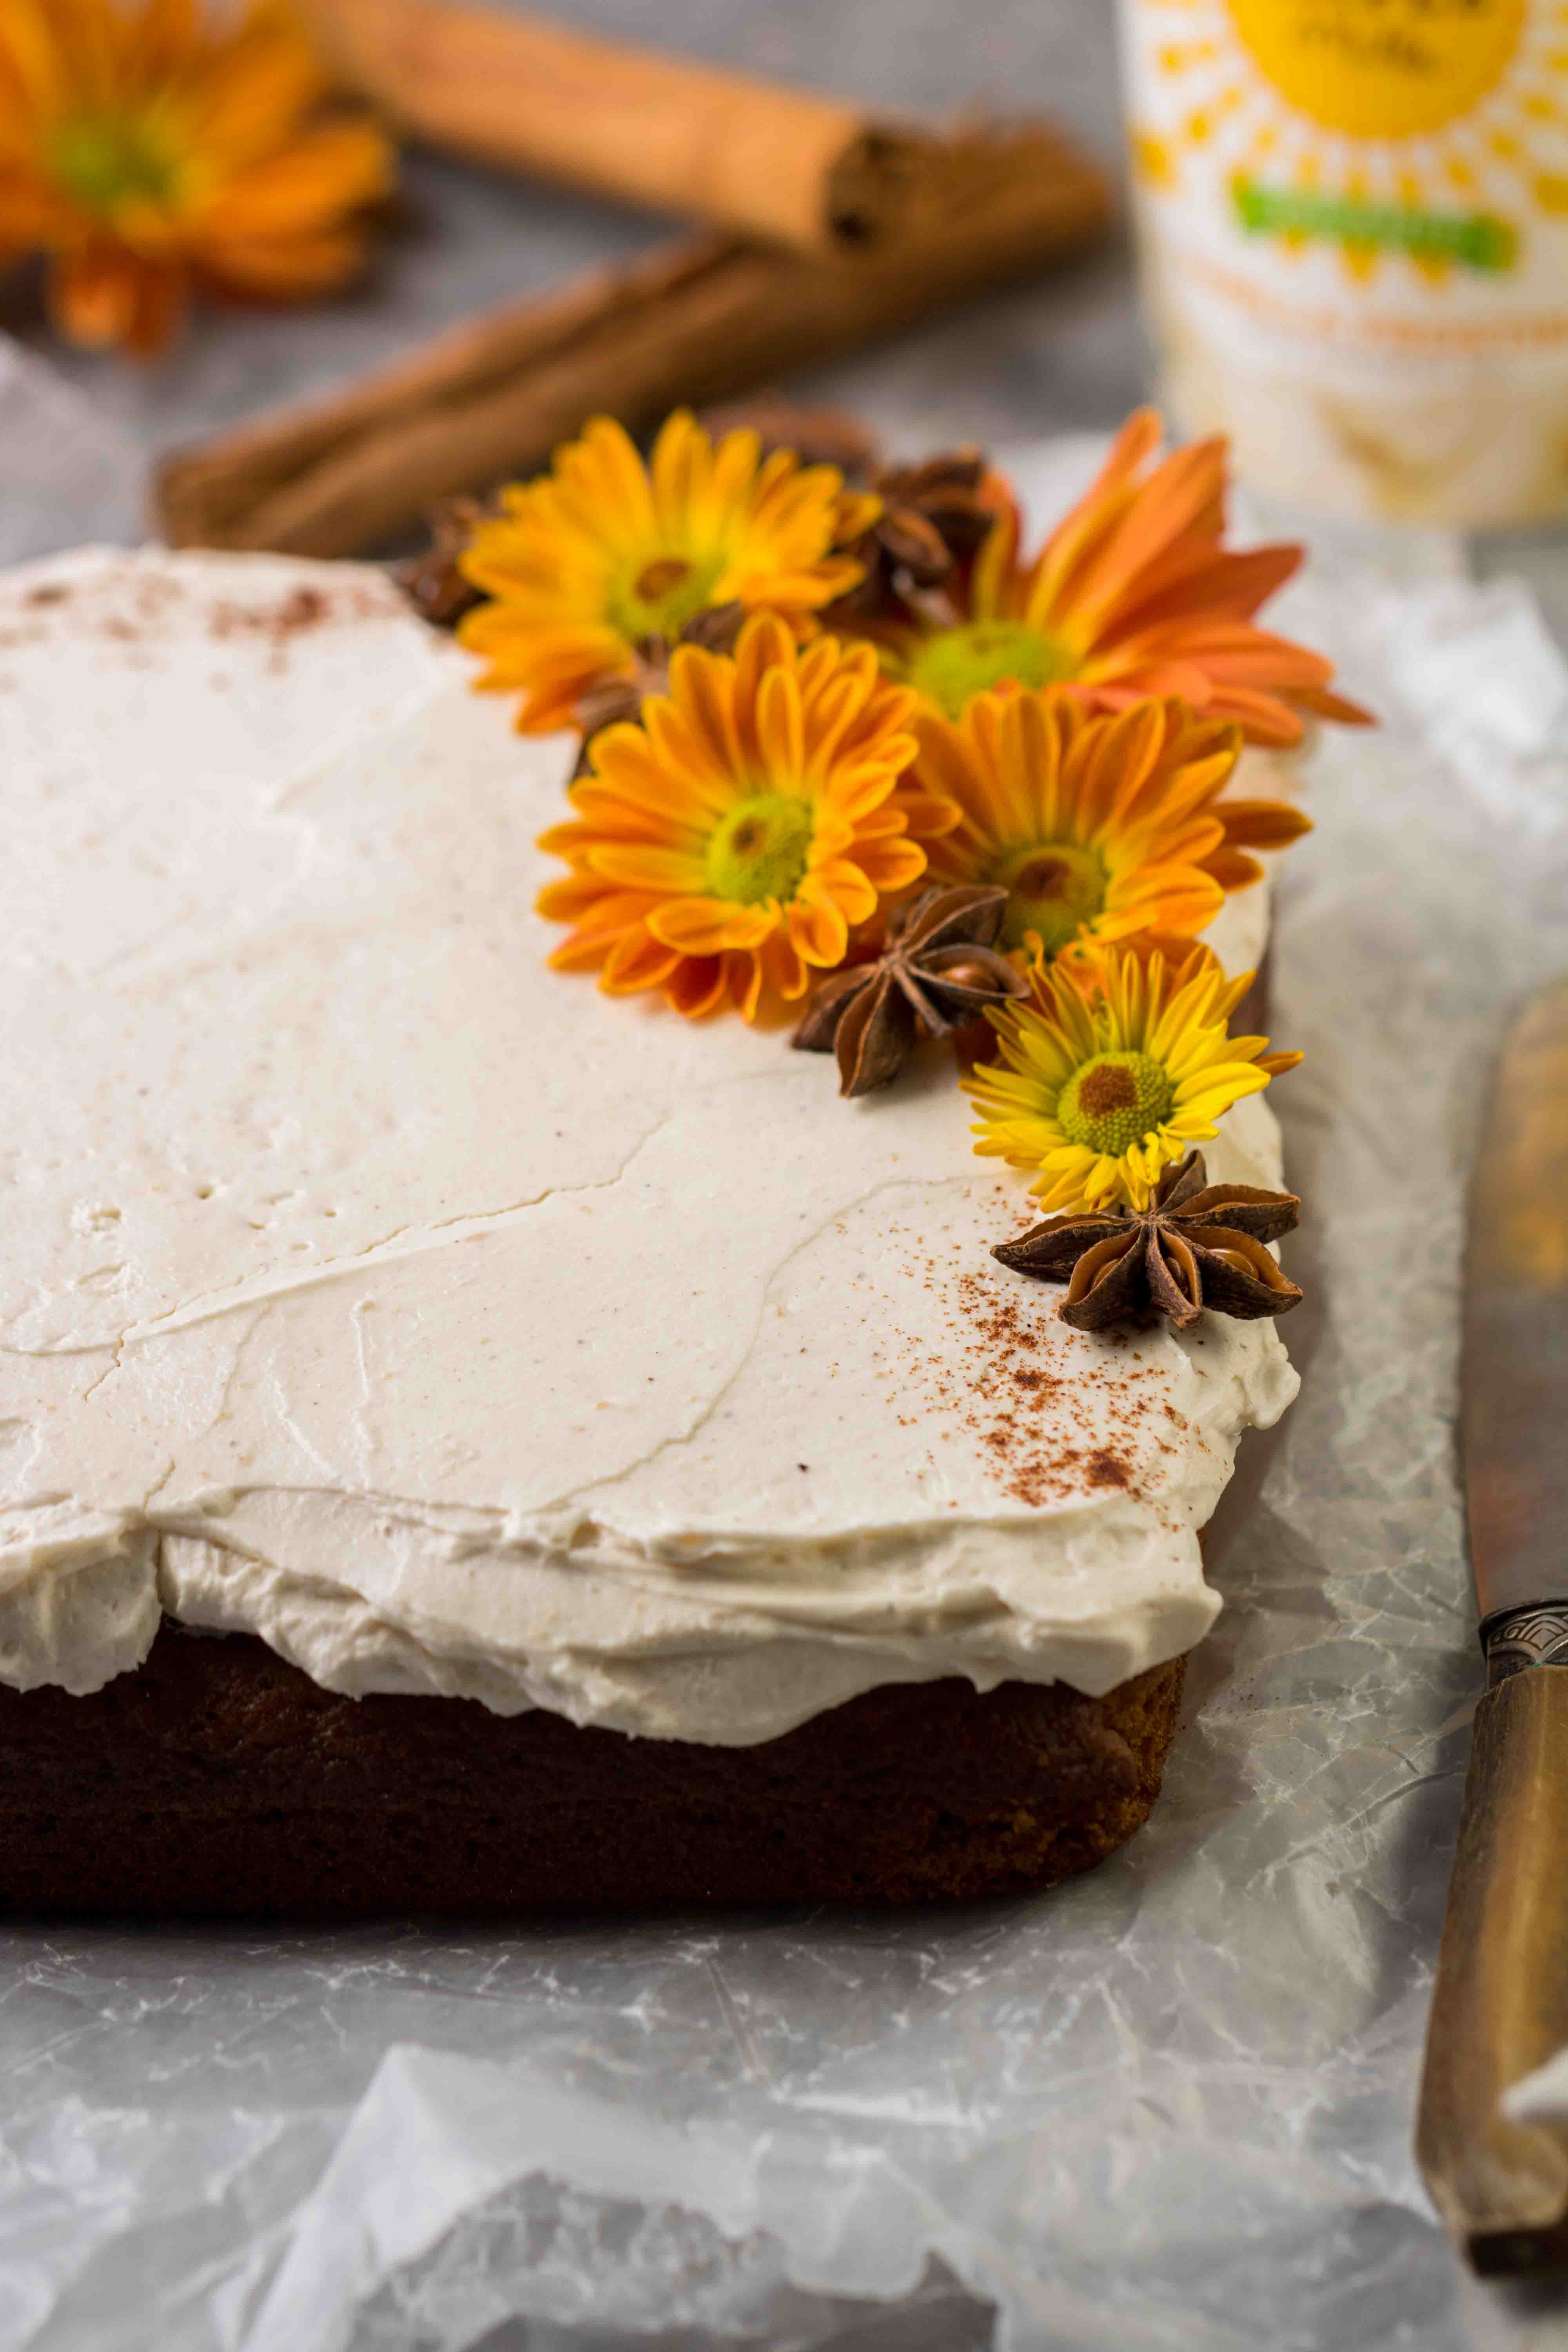 How to decorate pumpkin cake